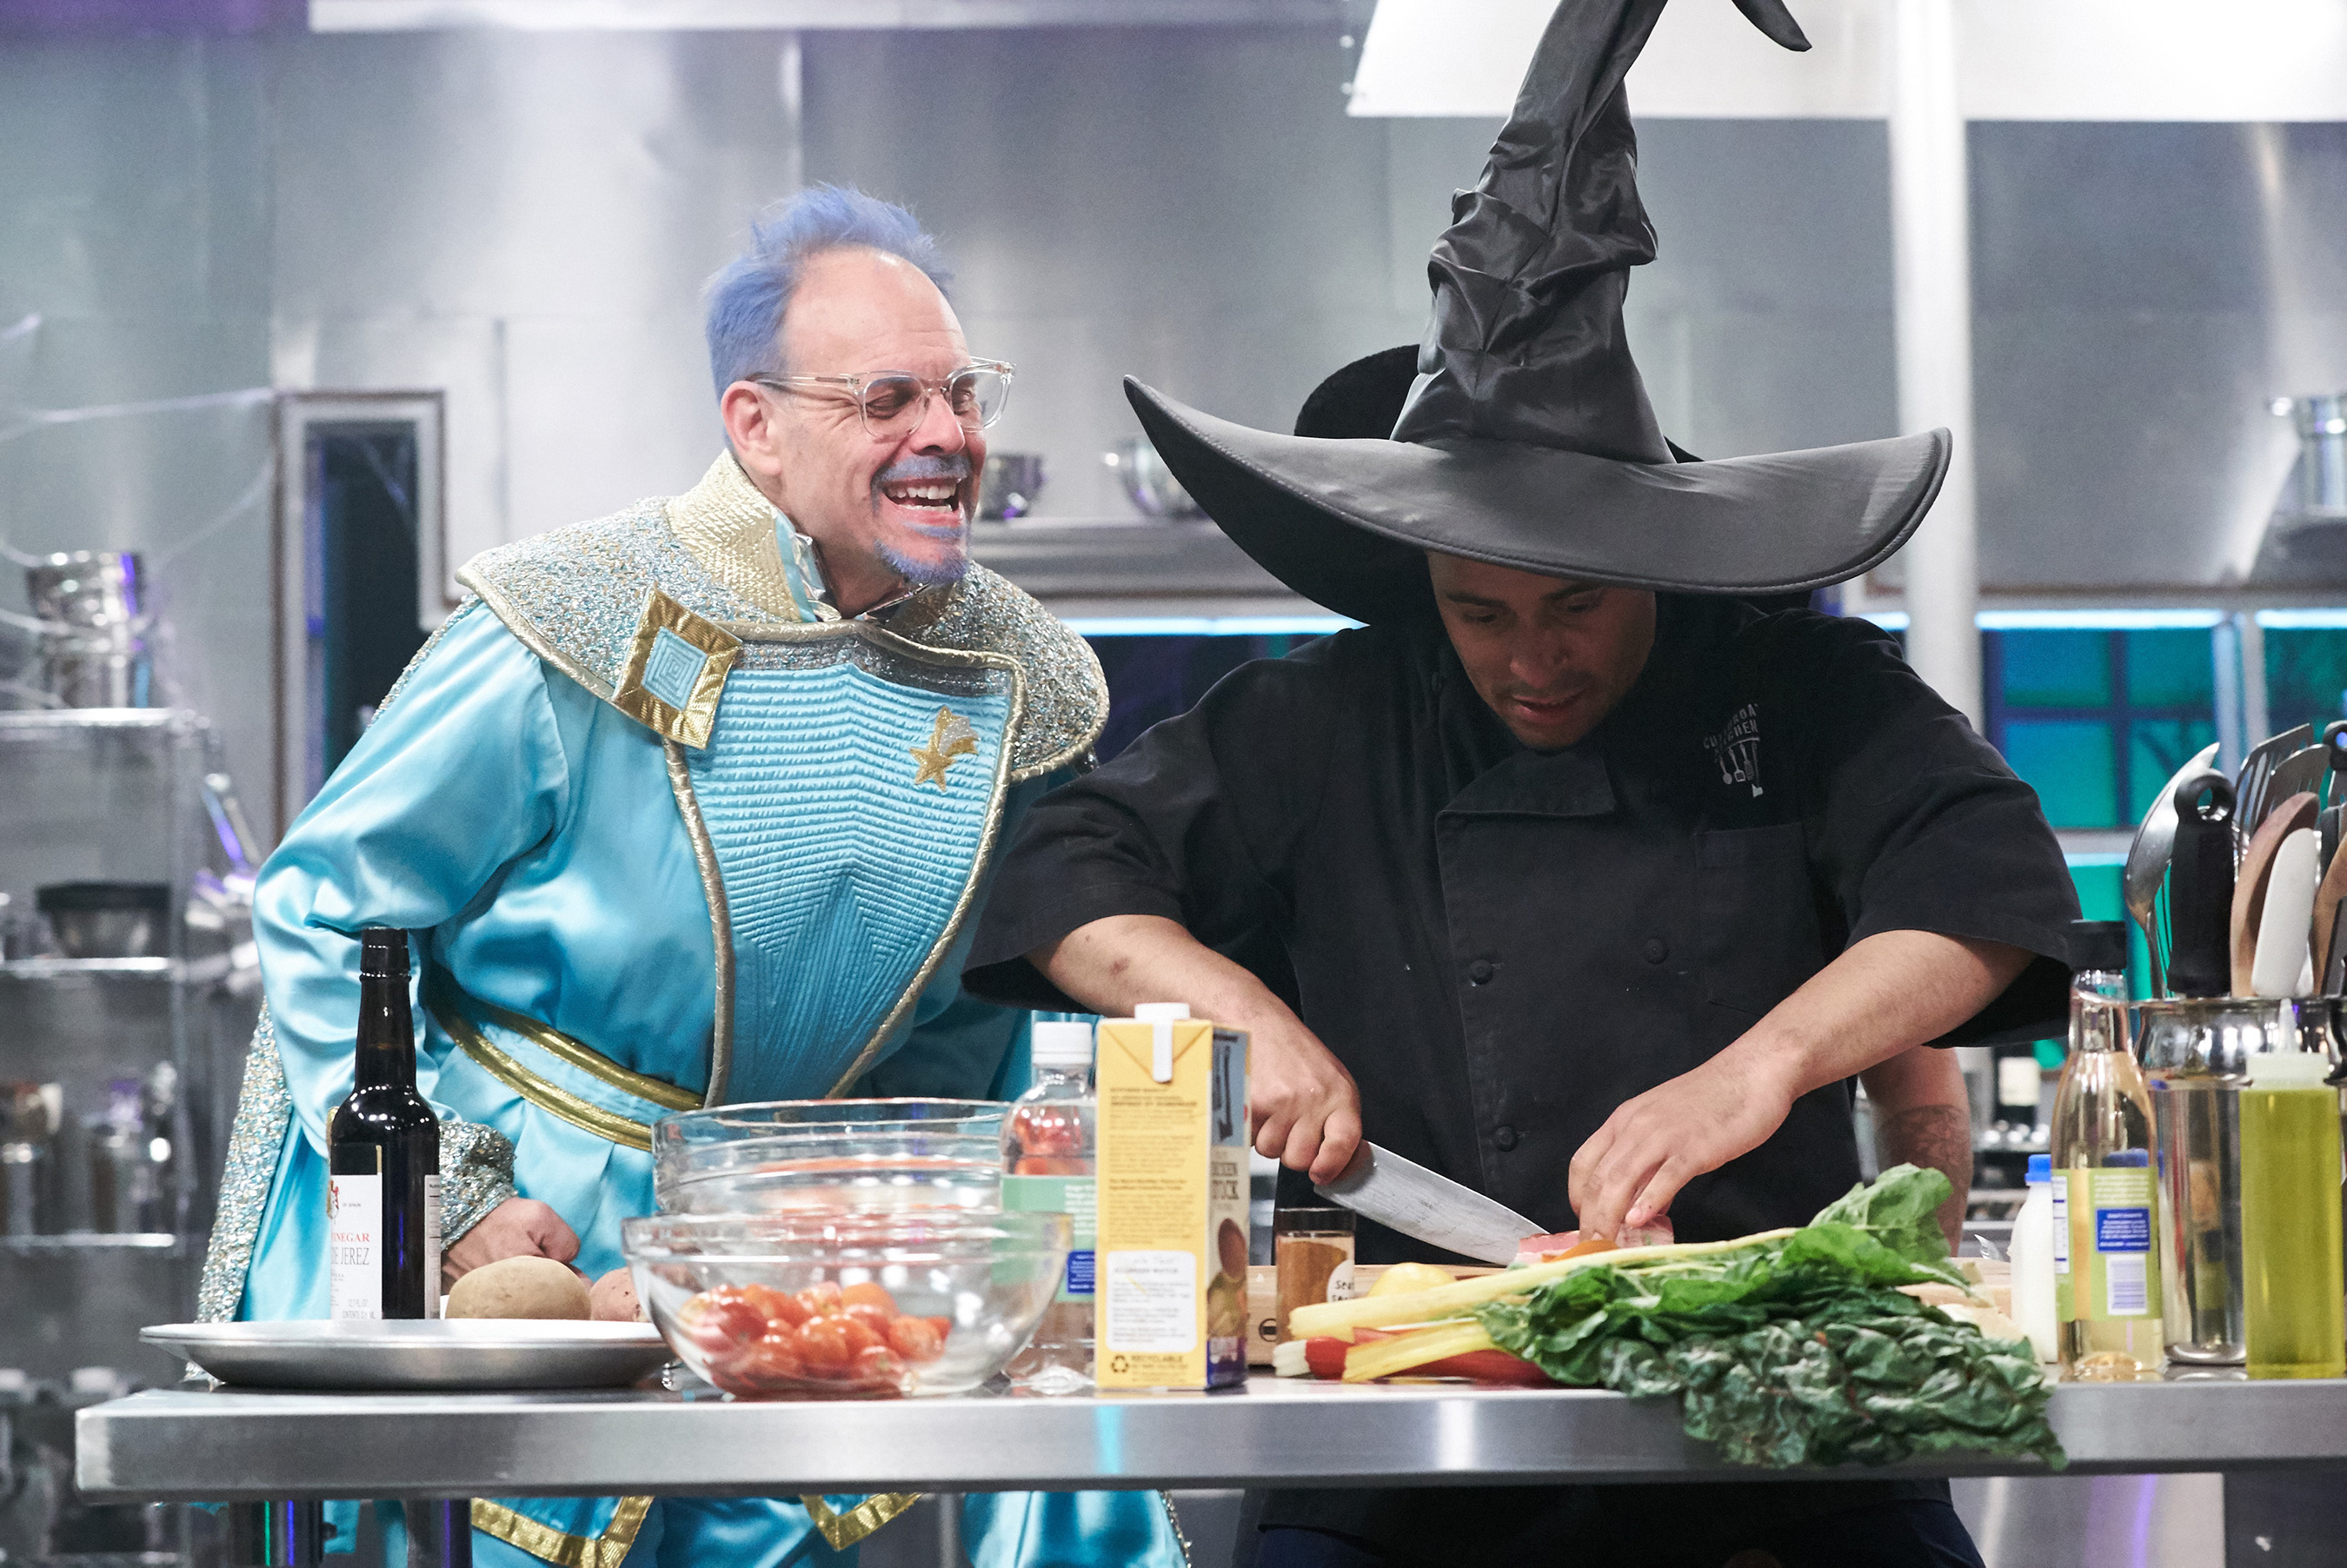 Get Ready for Halloween with Crafty Chefs and Spine-Chilling ...